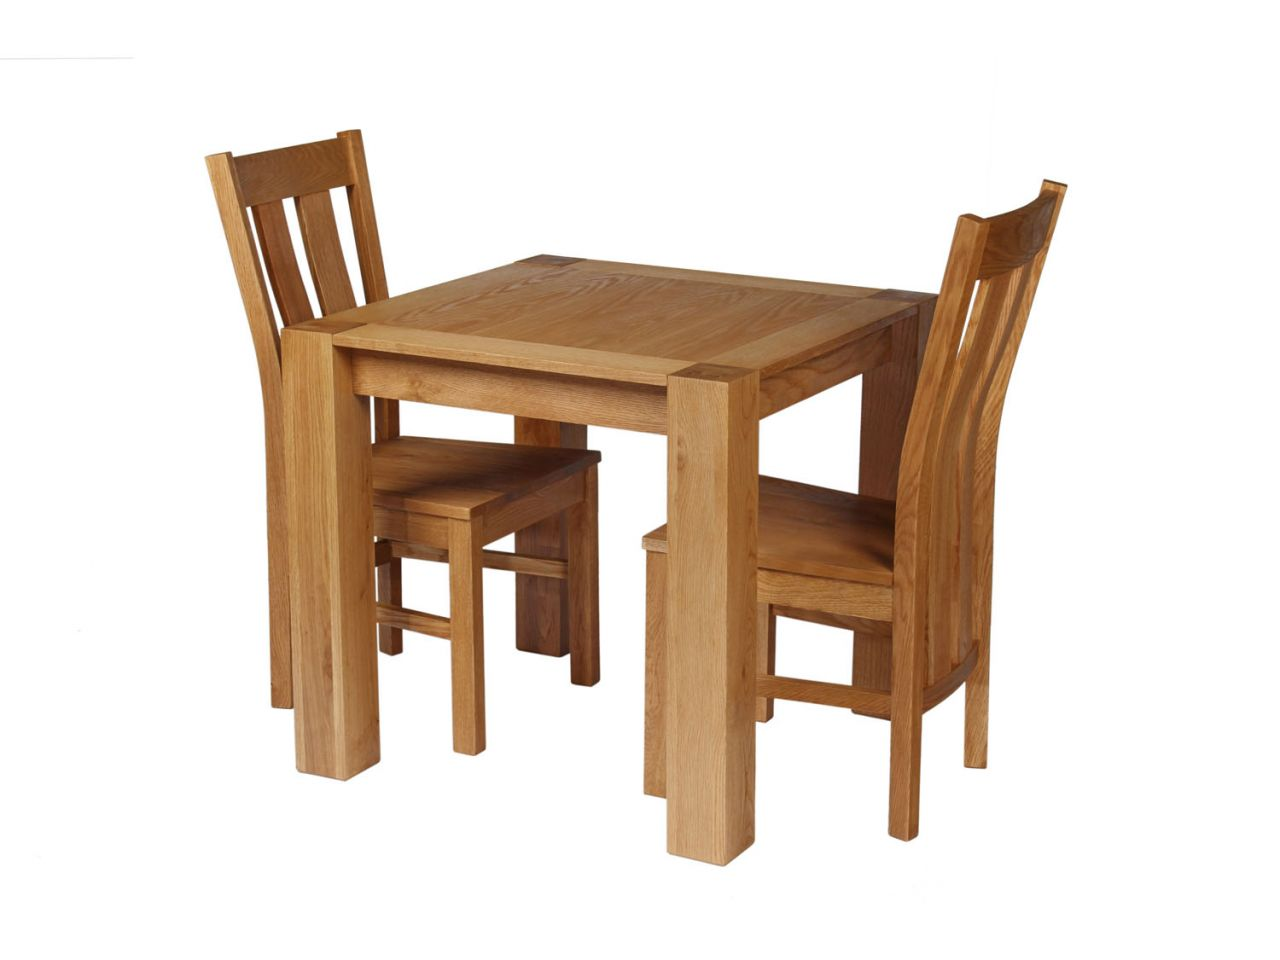 Small 2 Seater Table: Cambridge Small 2 Seater Oak Table & Chair Set